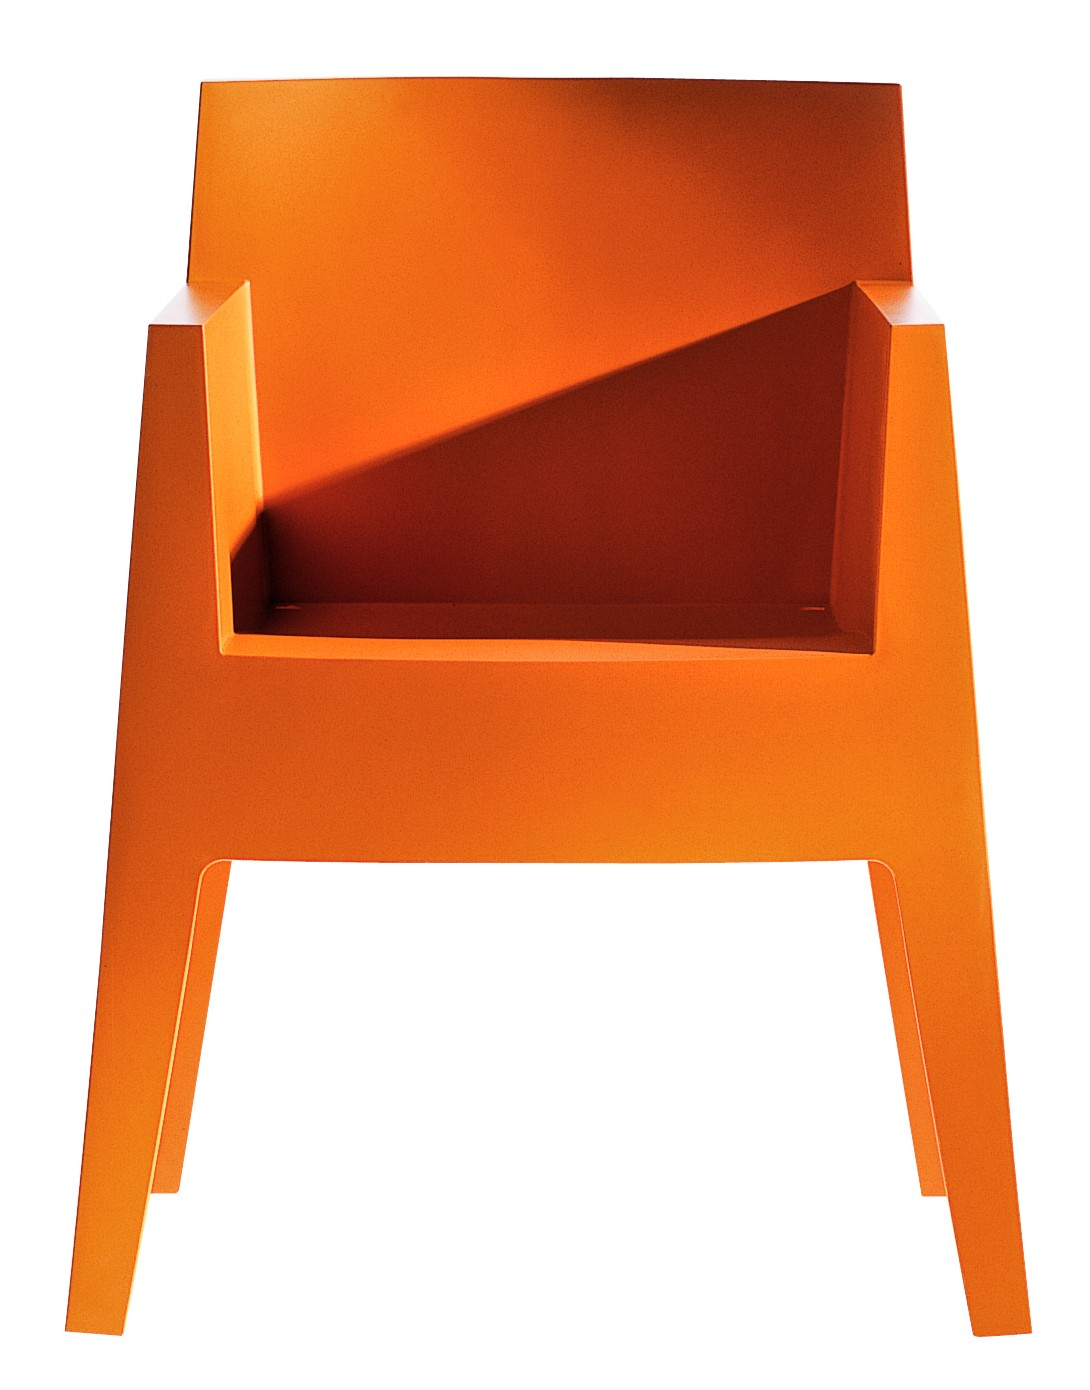 fauteuil salon orange inspiration sur l 39 int rieur et les meubles. Black Bedroom Furniture Sets. Home Design Ideas